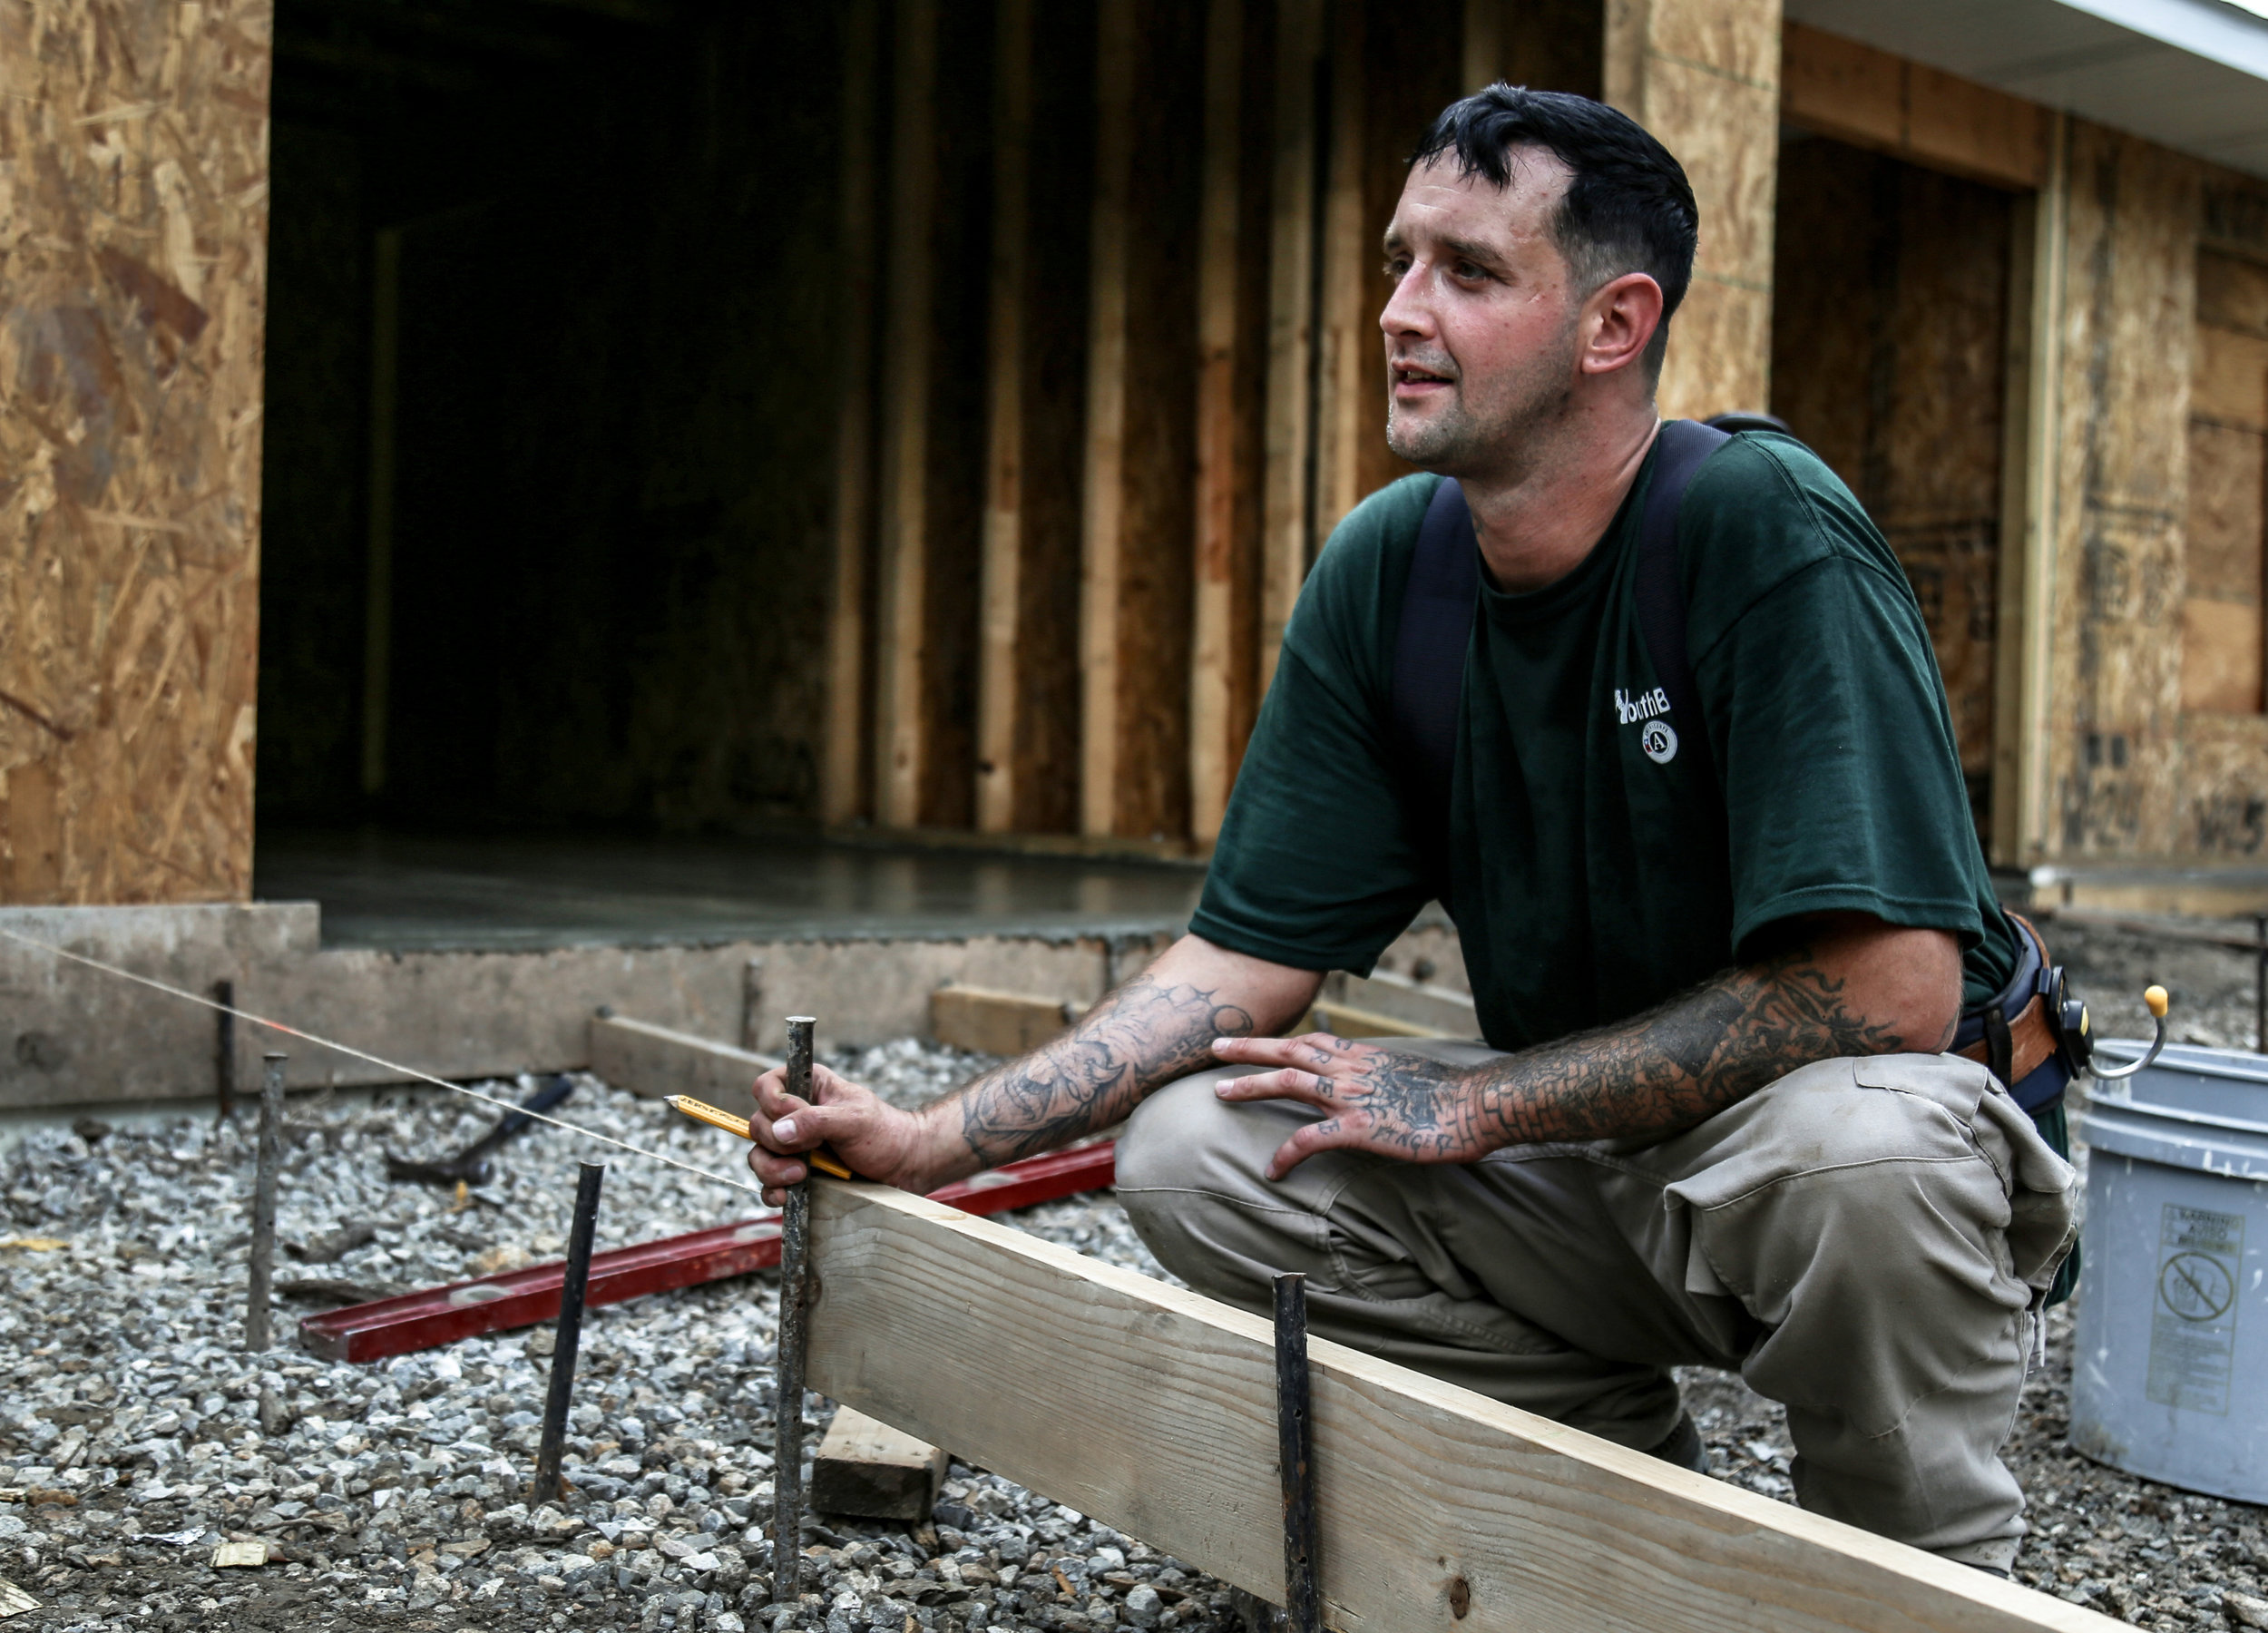 """Timothy Avey, 36, a construction student of Job Point, receives guidance on how to form the driveway before pouring concrete on Sept. 25 in Columbia, Missouri. After being incarcerated for six years, he went to Job Point for help to reenter the work force. """"I wanna be one of the best carpenters Job Point's ever seen,"""" said Avey."""